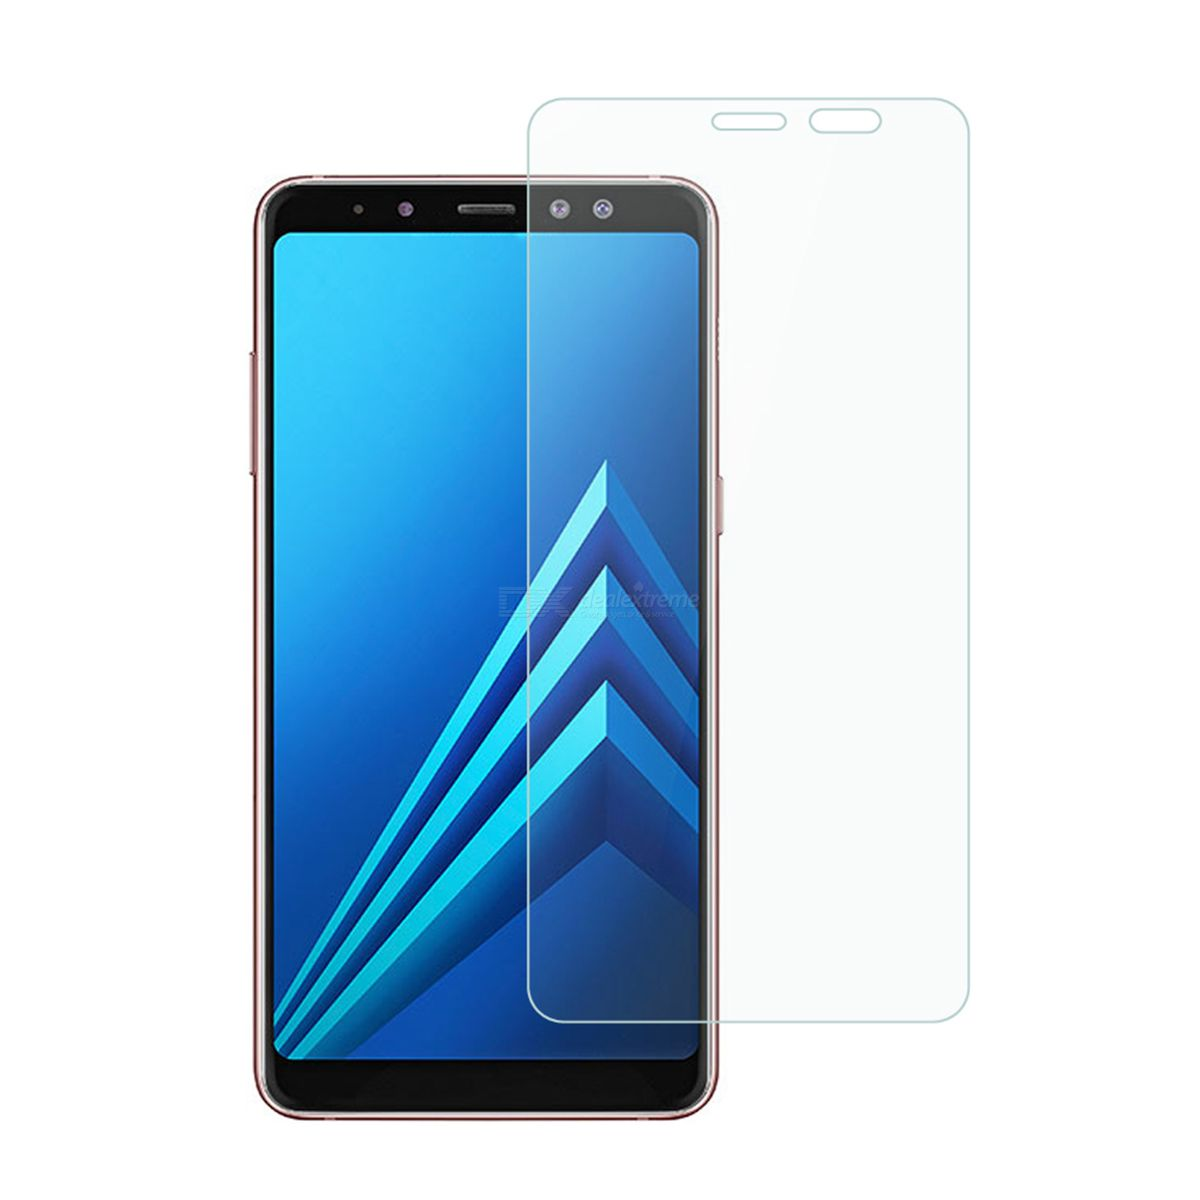 Dealextreme / Dayspirit Tempered Glass Screen Protectors for Samsung Galaxy A8+ (2018), A8 Plus 2018 , A730